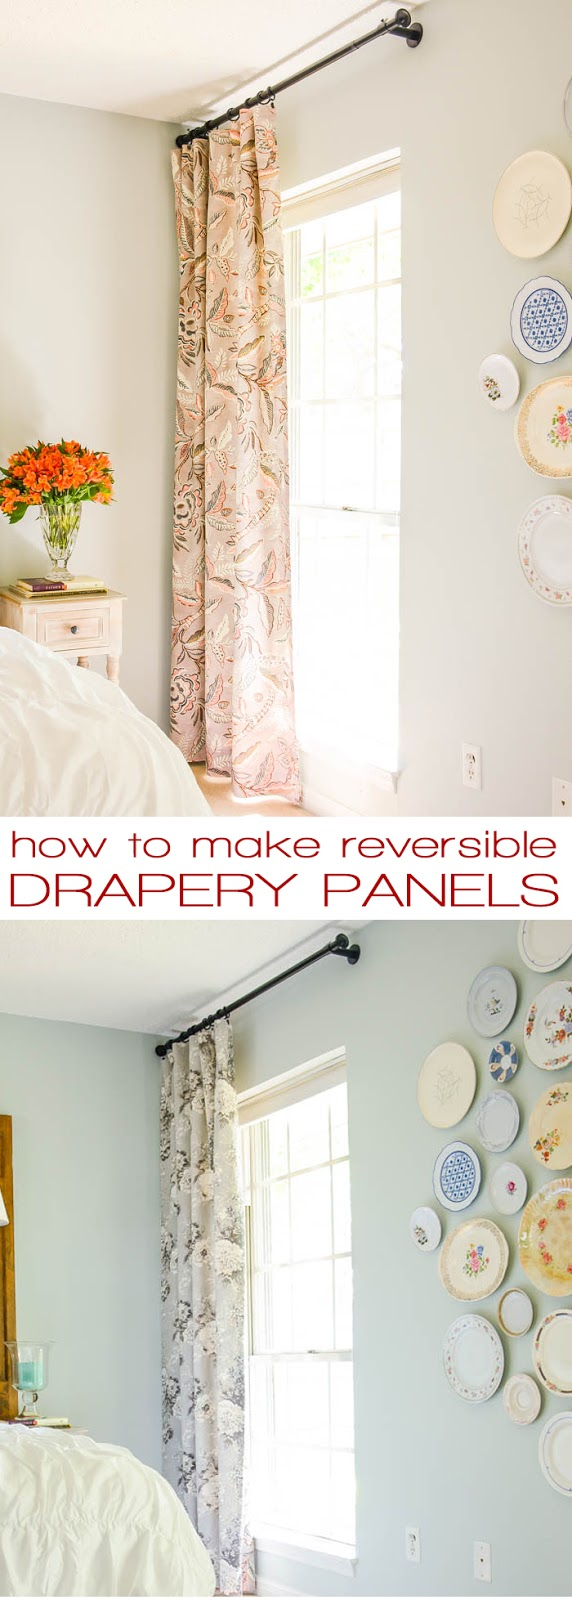 How to Sew Drapes that Can Reverse